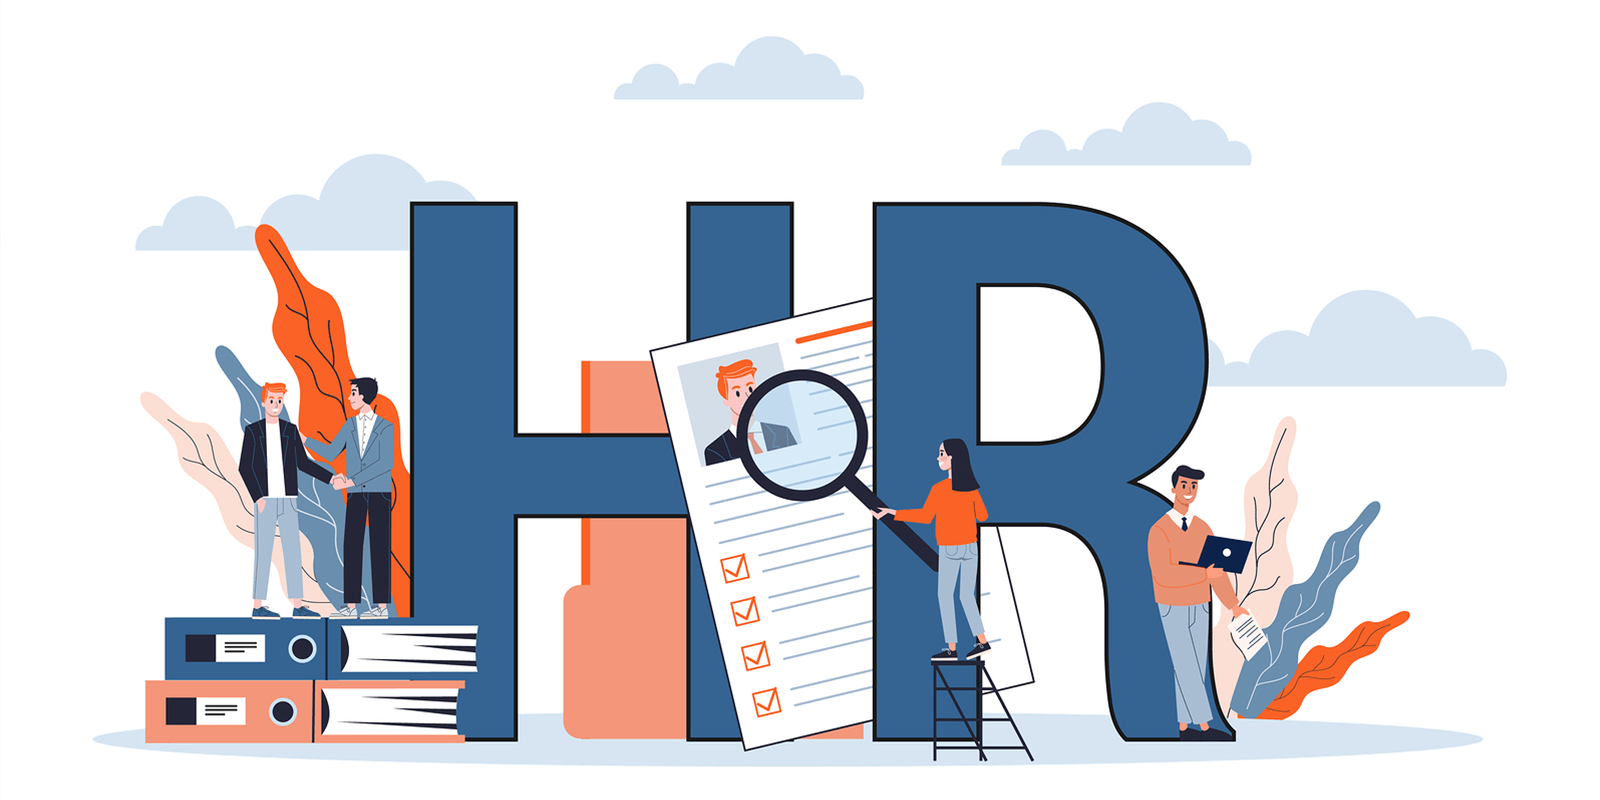 What Happens When You Take the HUMAN out of Human Resources?